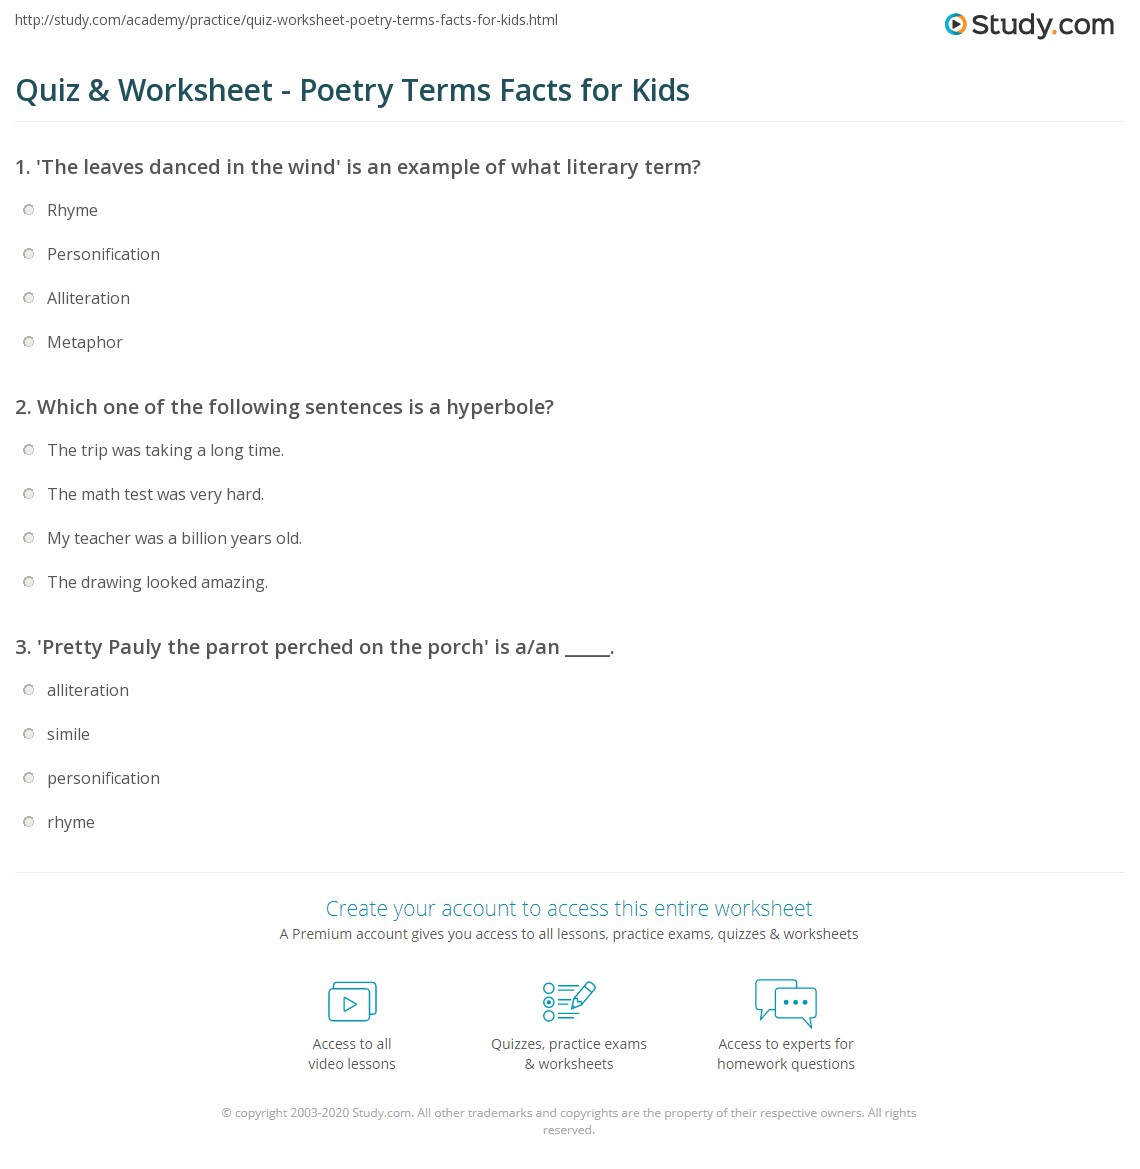 Quiz W Ksheet Poetry Terms F Cts Kids Study